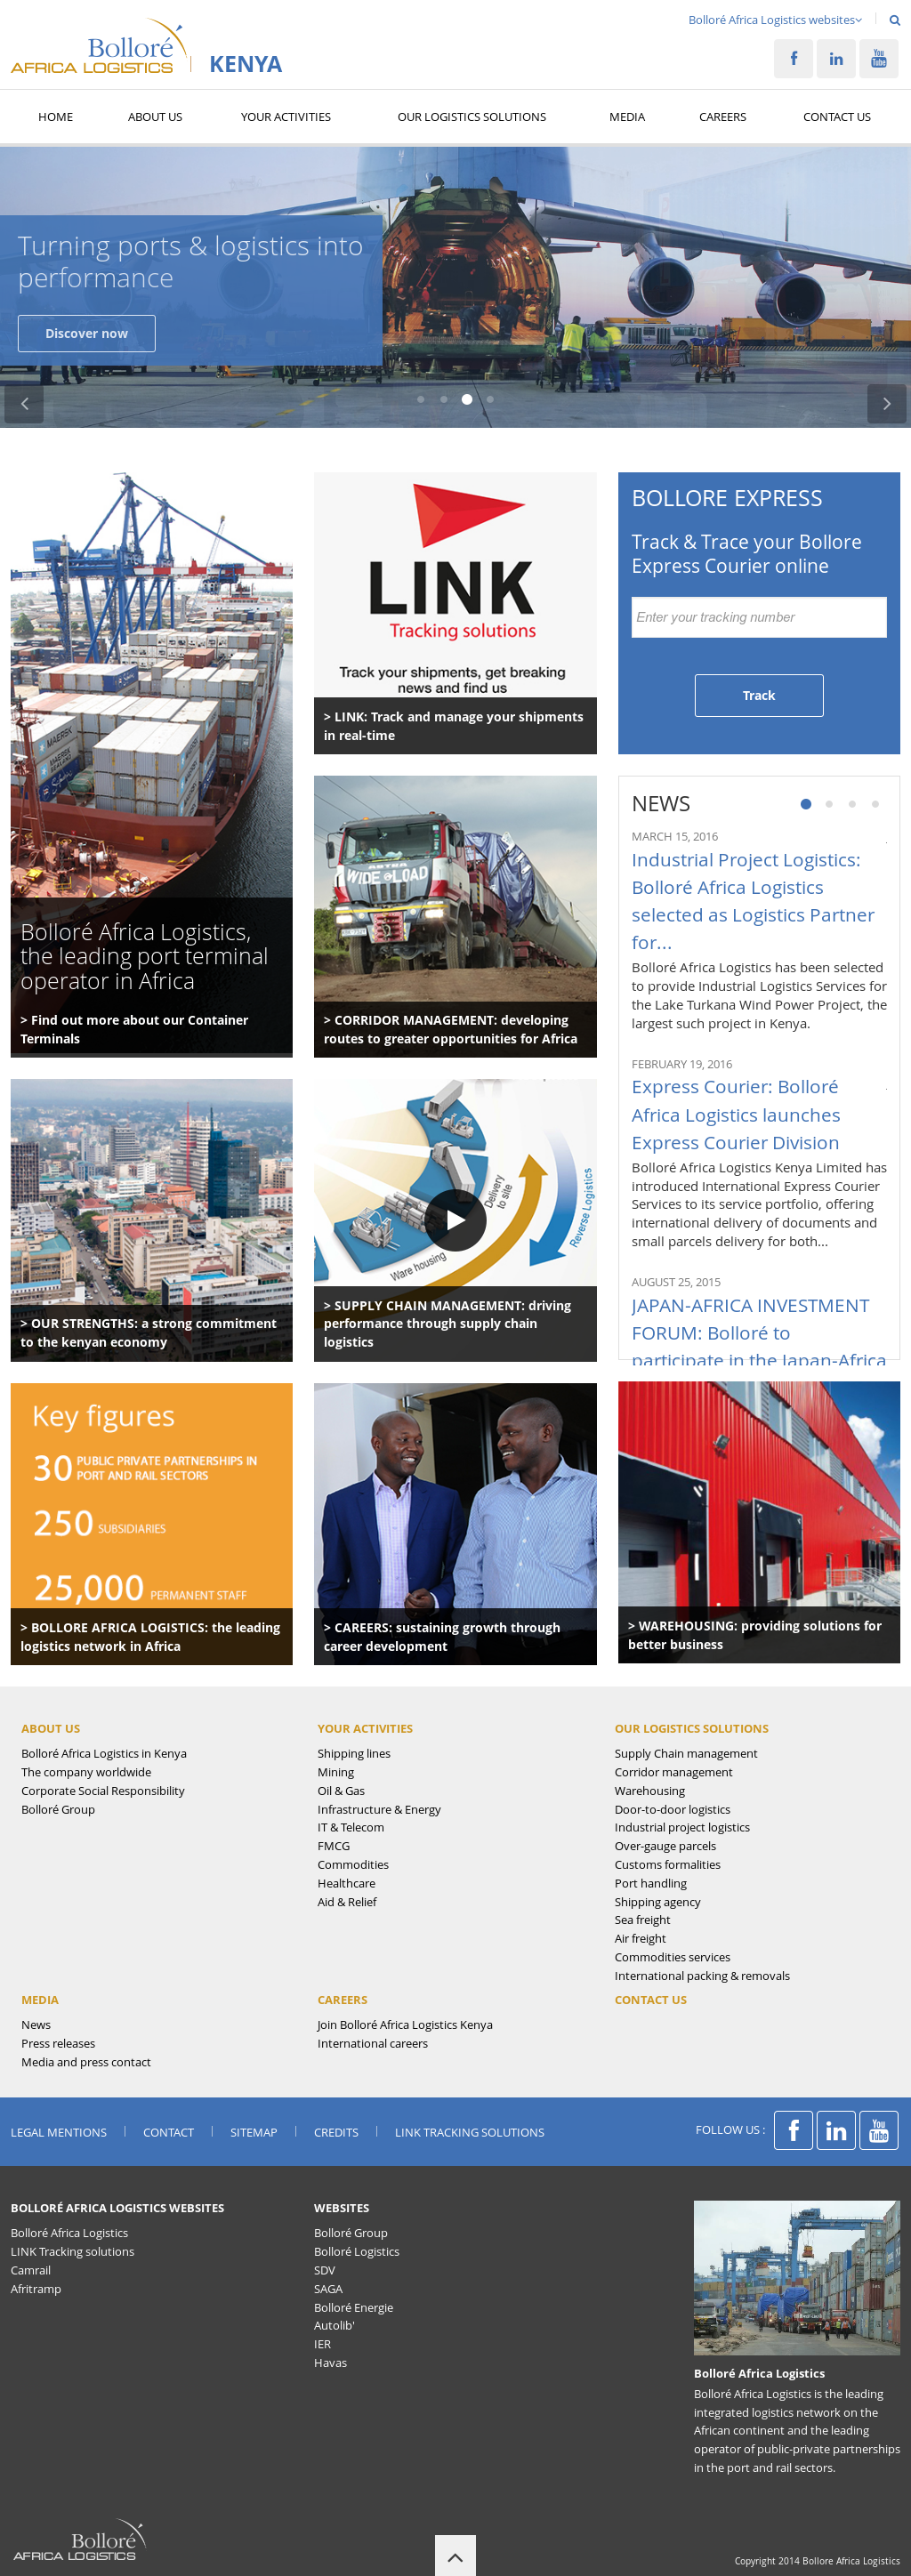 Bollore Africa Logistics Competitors, Revenue and Employees